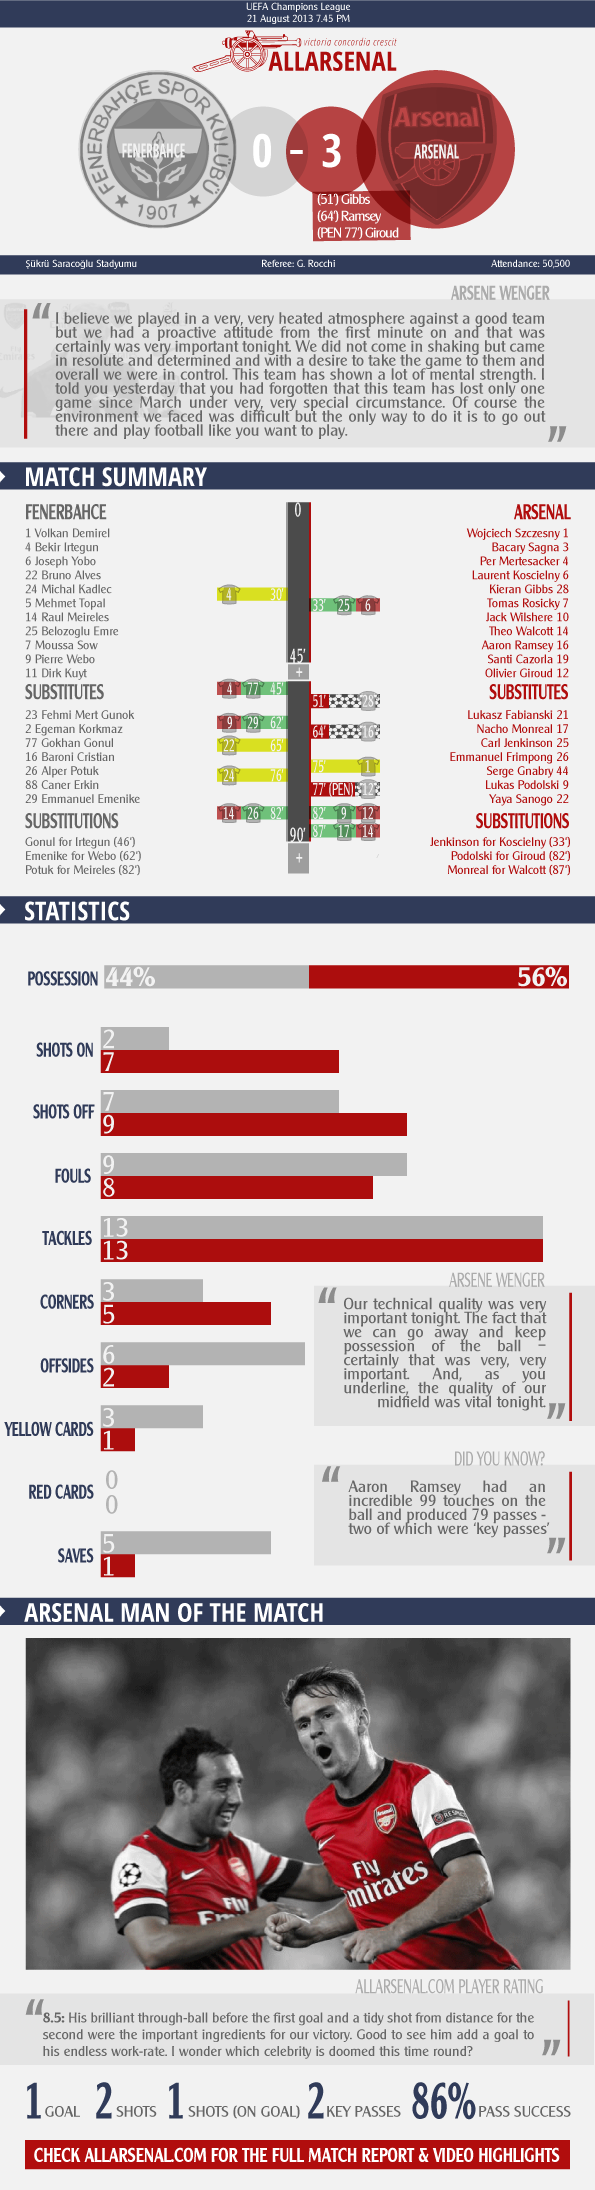 Arsenal Infographic